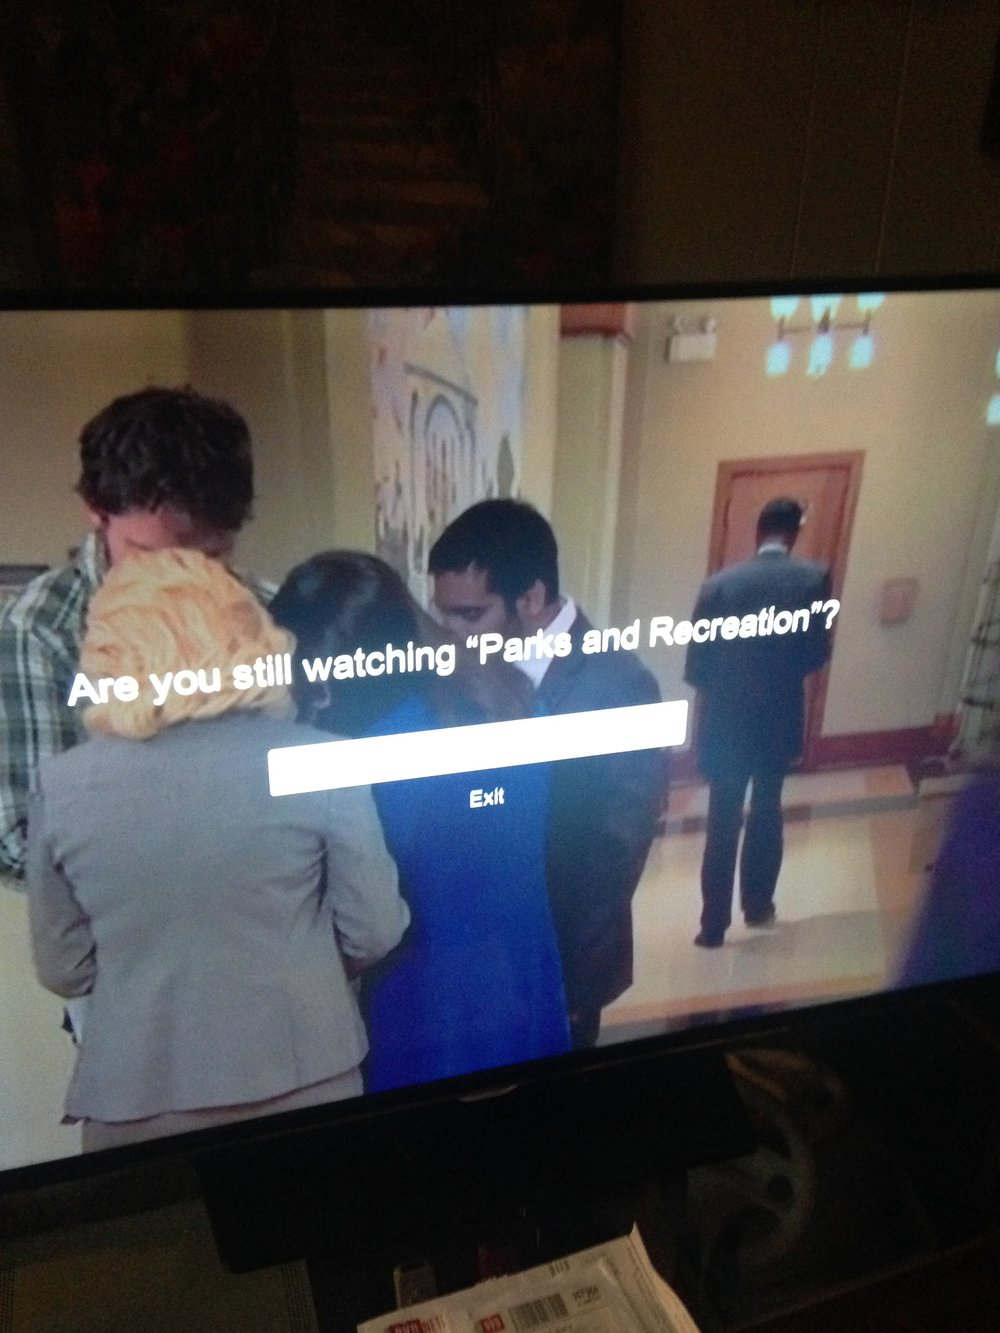 Umm, excuse me. Does it LOOK like I'm still watching?